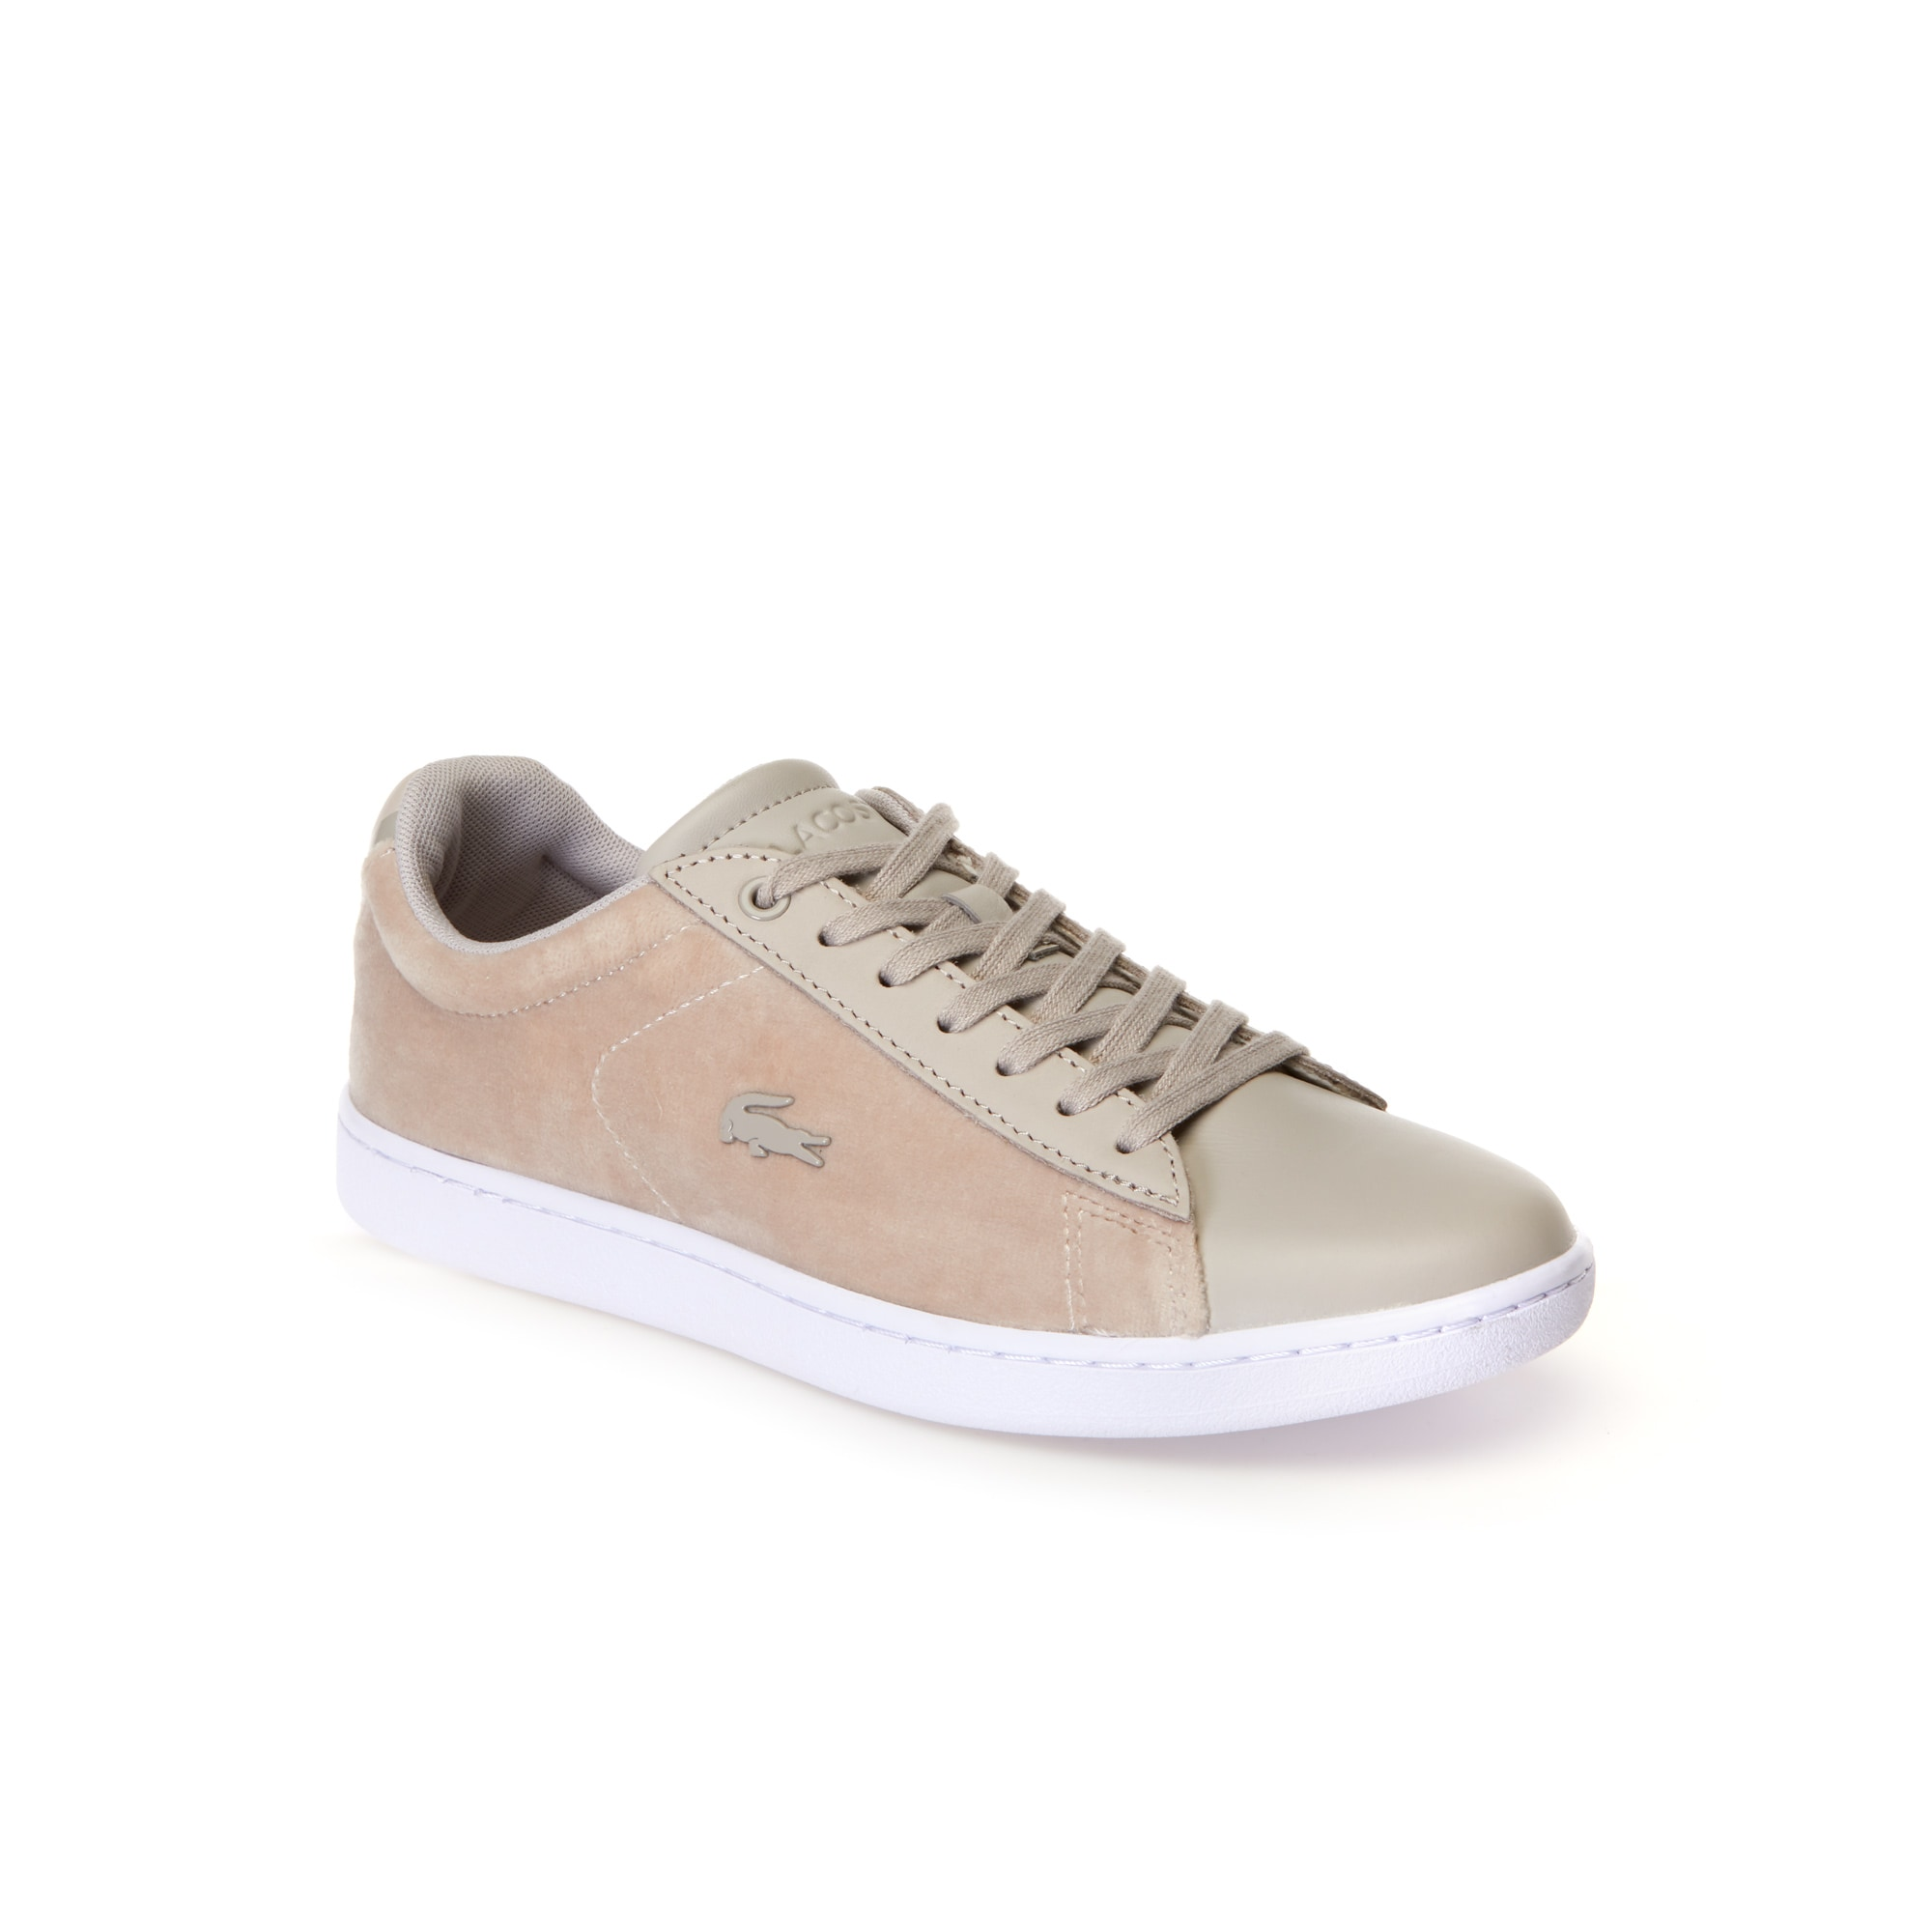 Women's Carnaby Evo Velvet and Leather Trainers